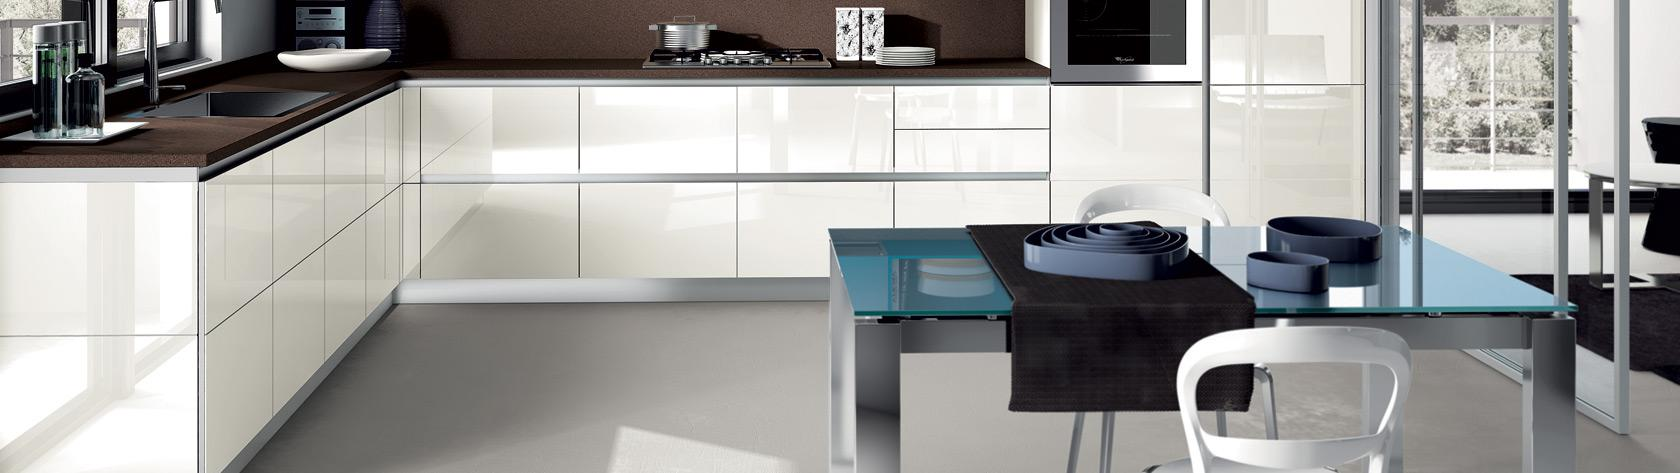 Stunning Come Rivestire La Cucina Contemporary - Skilifts.us ...